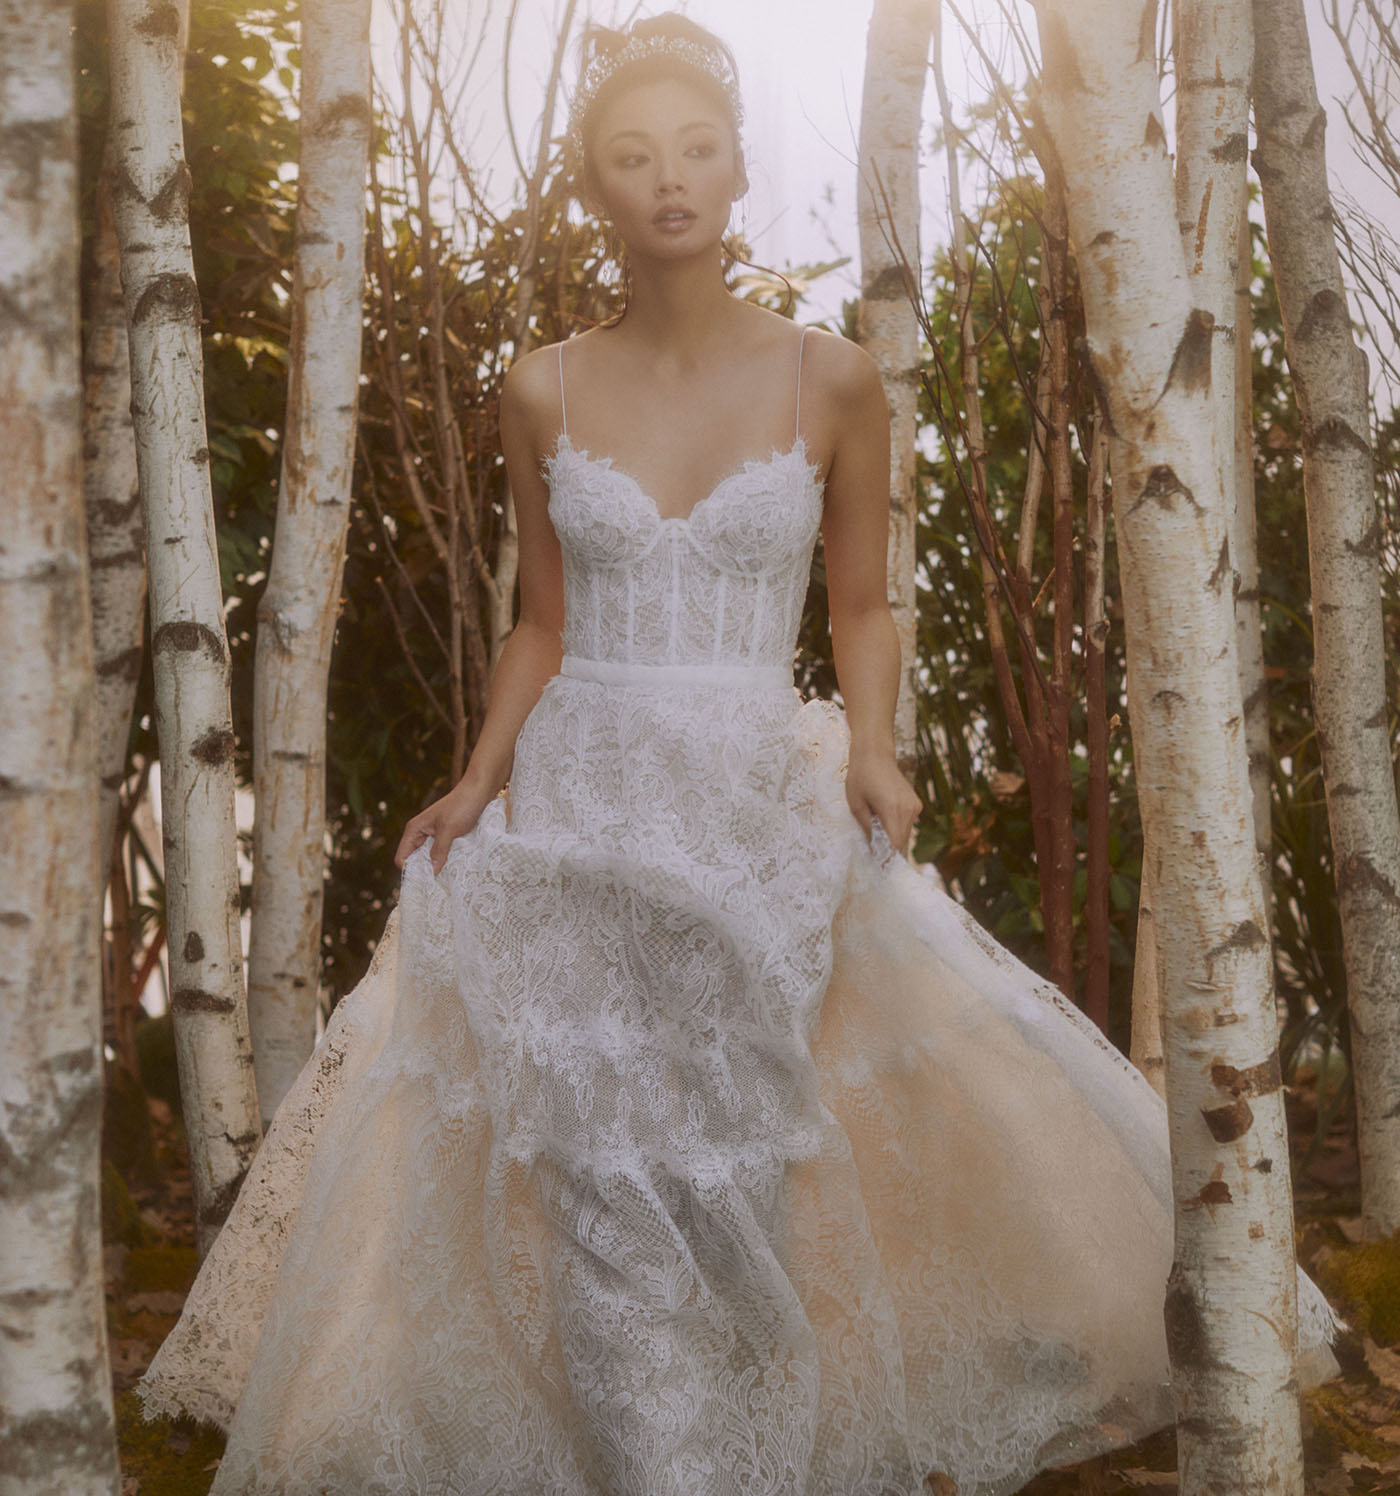 Let?s Count Down the Best Wedding Dresses For 2021 From BHLDN!